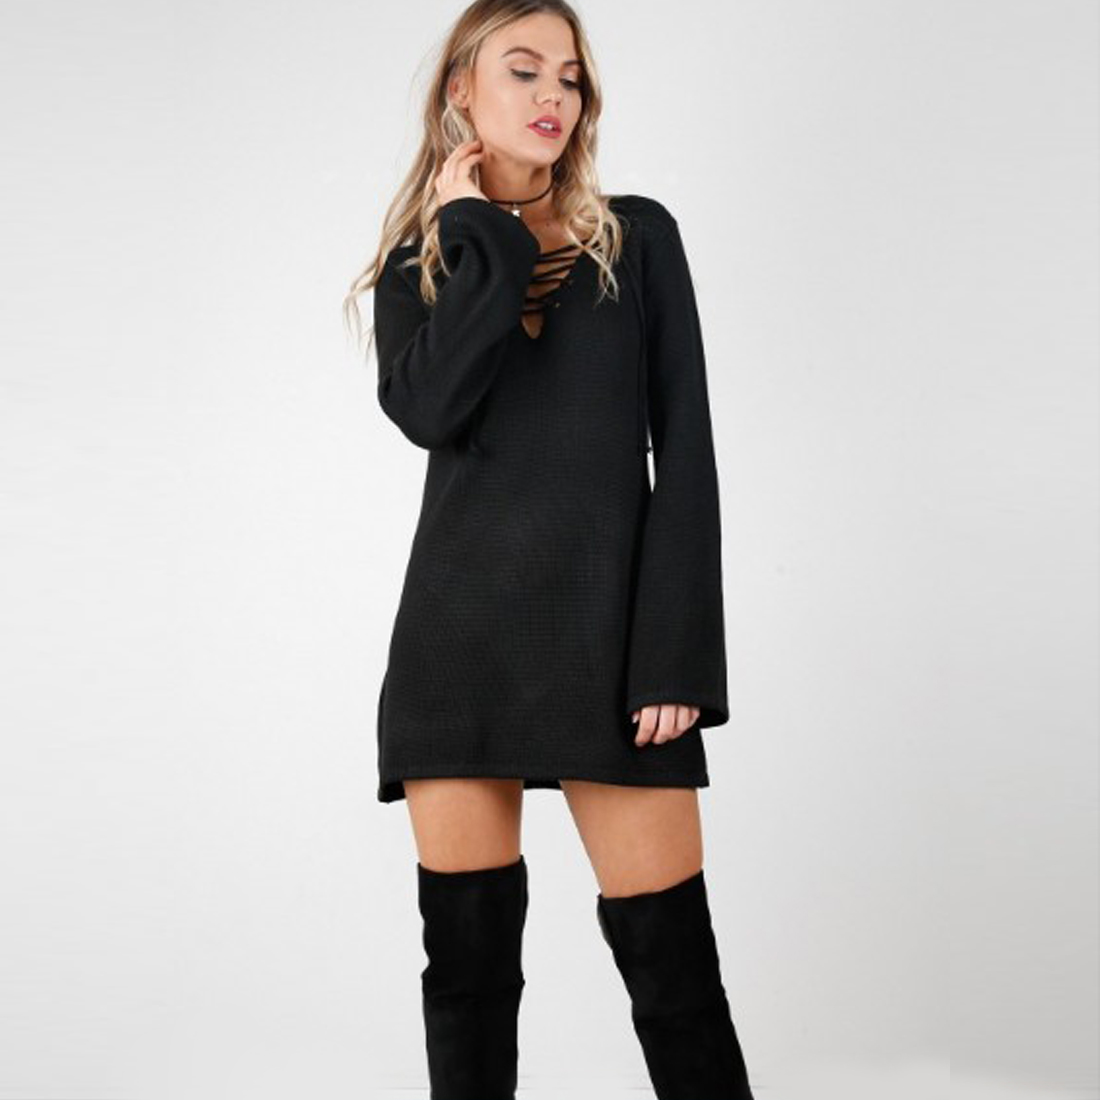 Fashion Khaki Long Sleeve Lace Up Knitted Dress Long Bottoming Shirt Black Casual Loose Mini Sweater Dress Pullover for Women